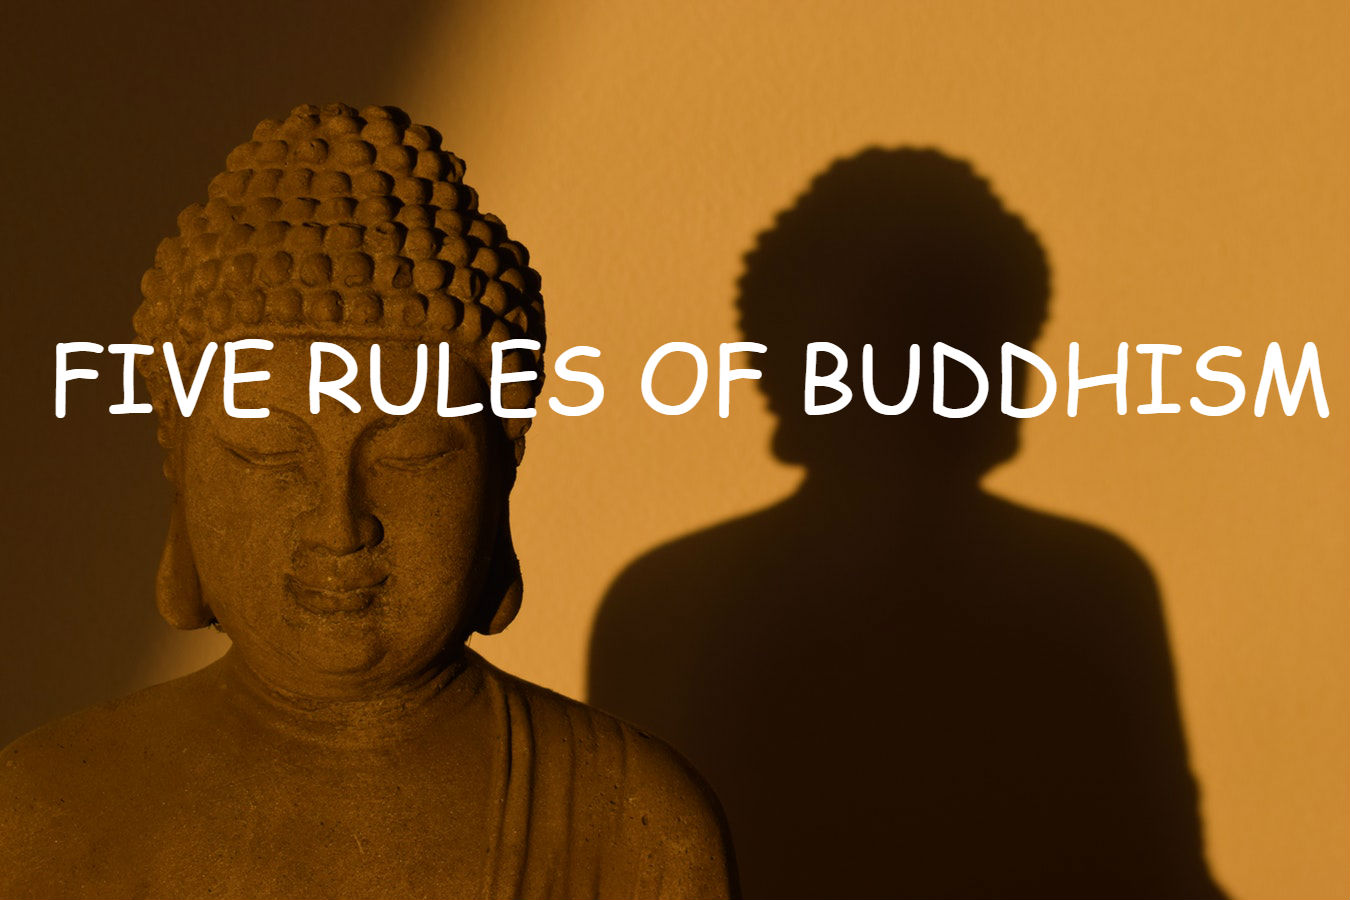 FIVE RULES OF BUDDHISM